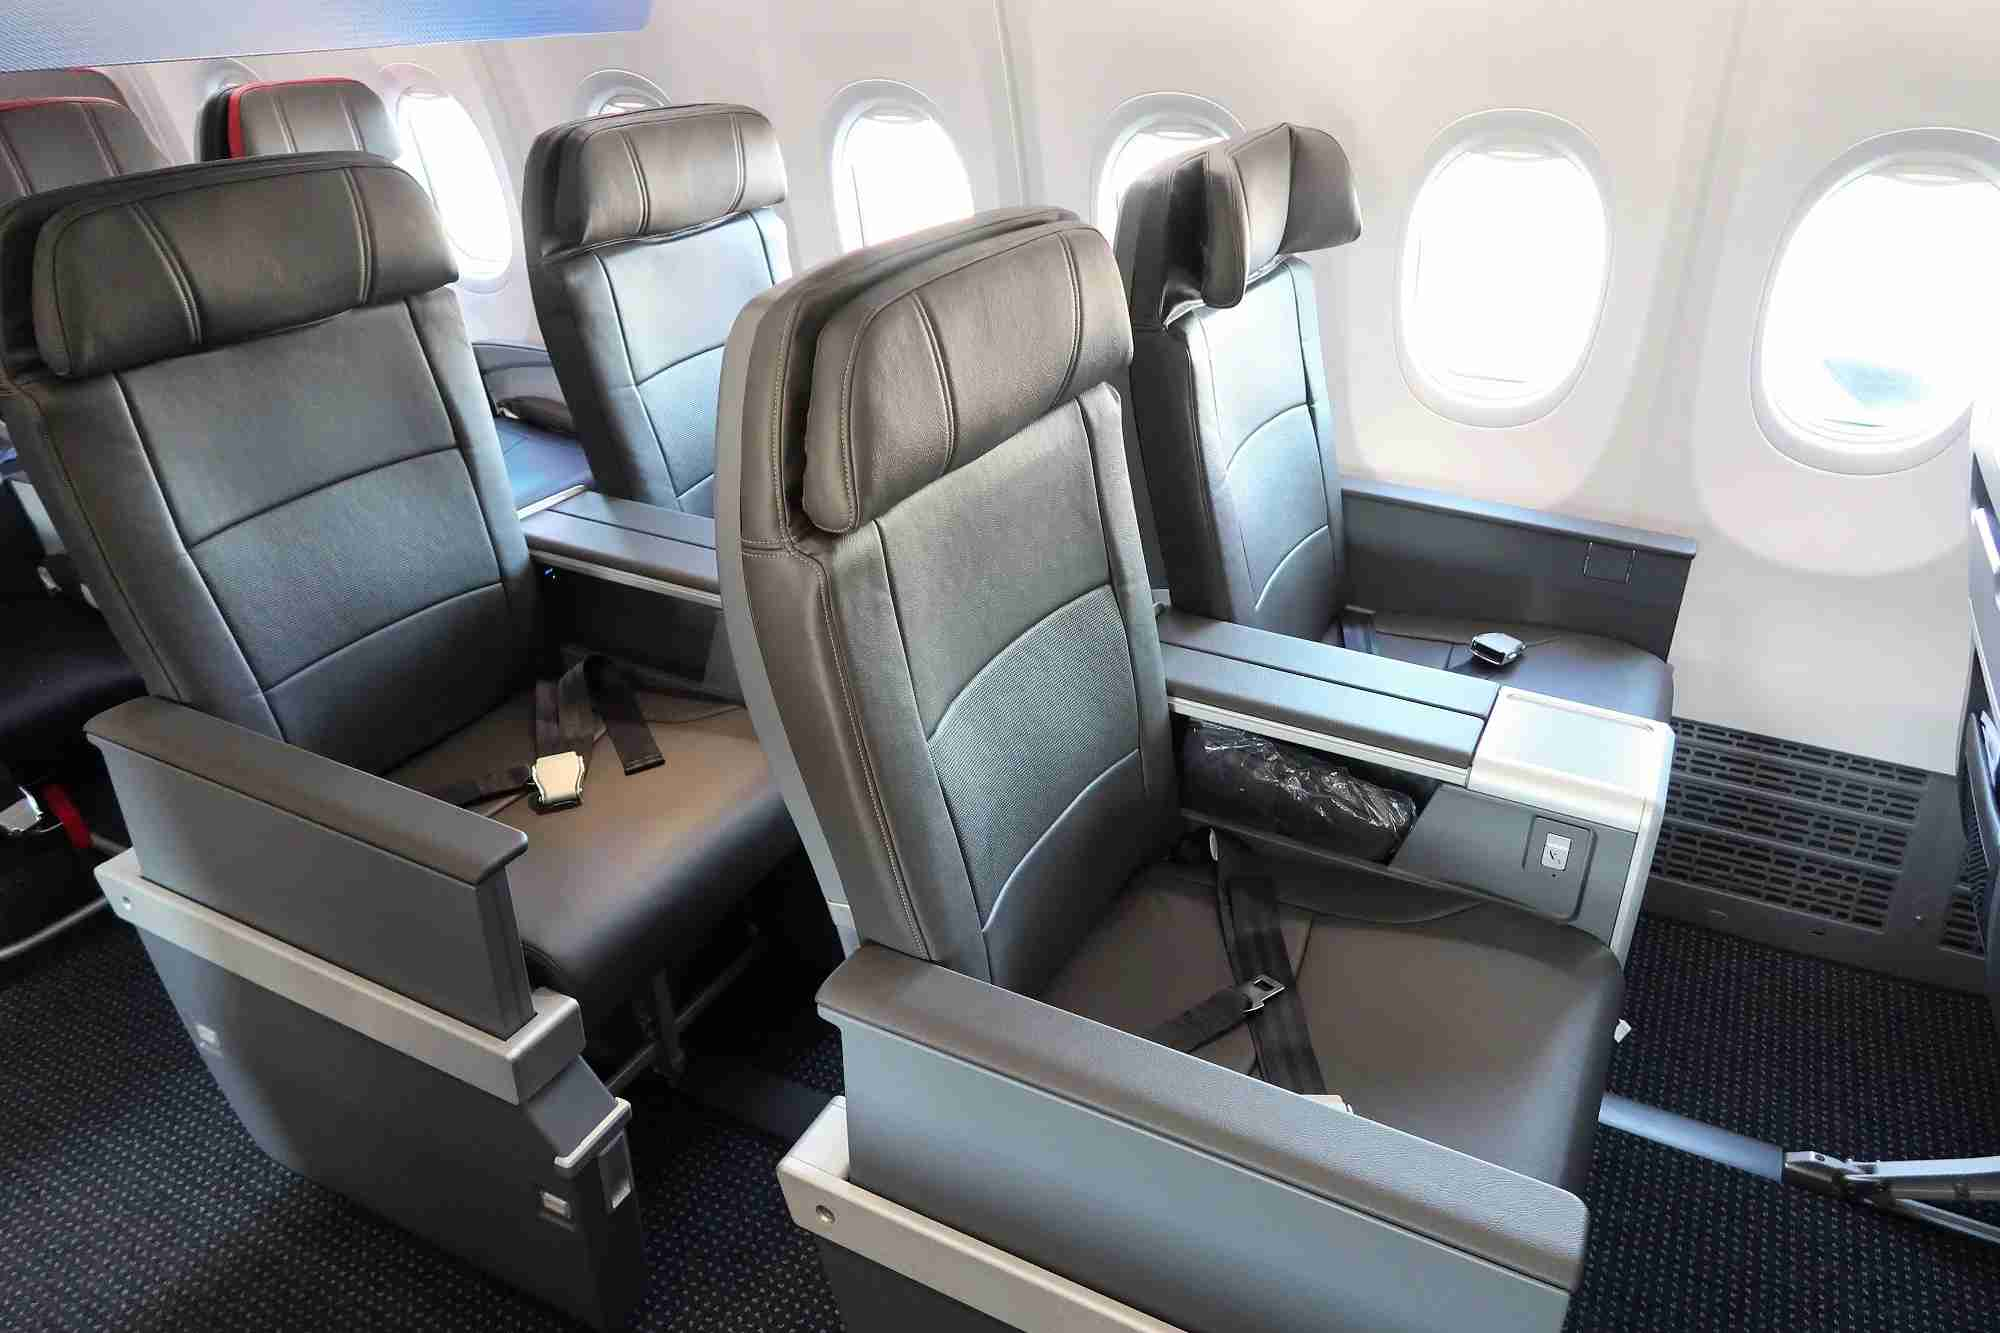 Photo of domestic first class on American Airlines 737 MAX by JT Genter / The Points Guy.